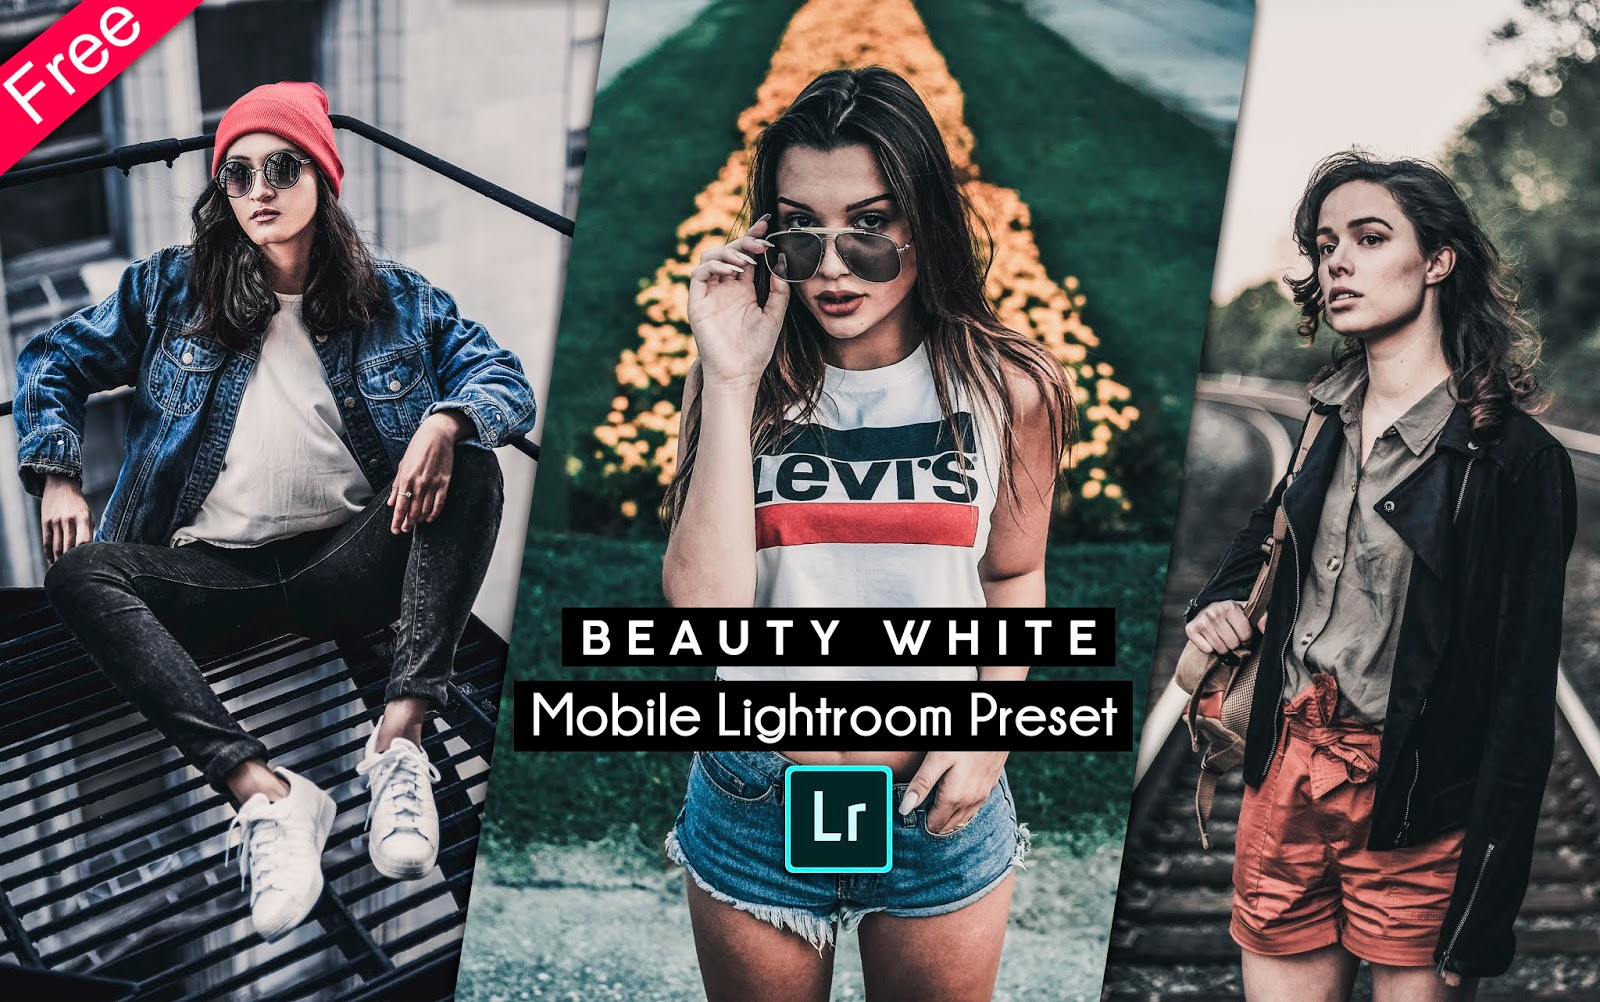 Download Beauty White Mobile Lightroom Preset for Free | Beauty White Instagram Filter Free Download